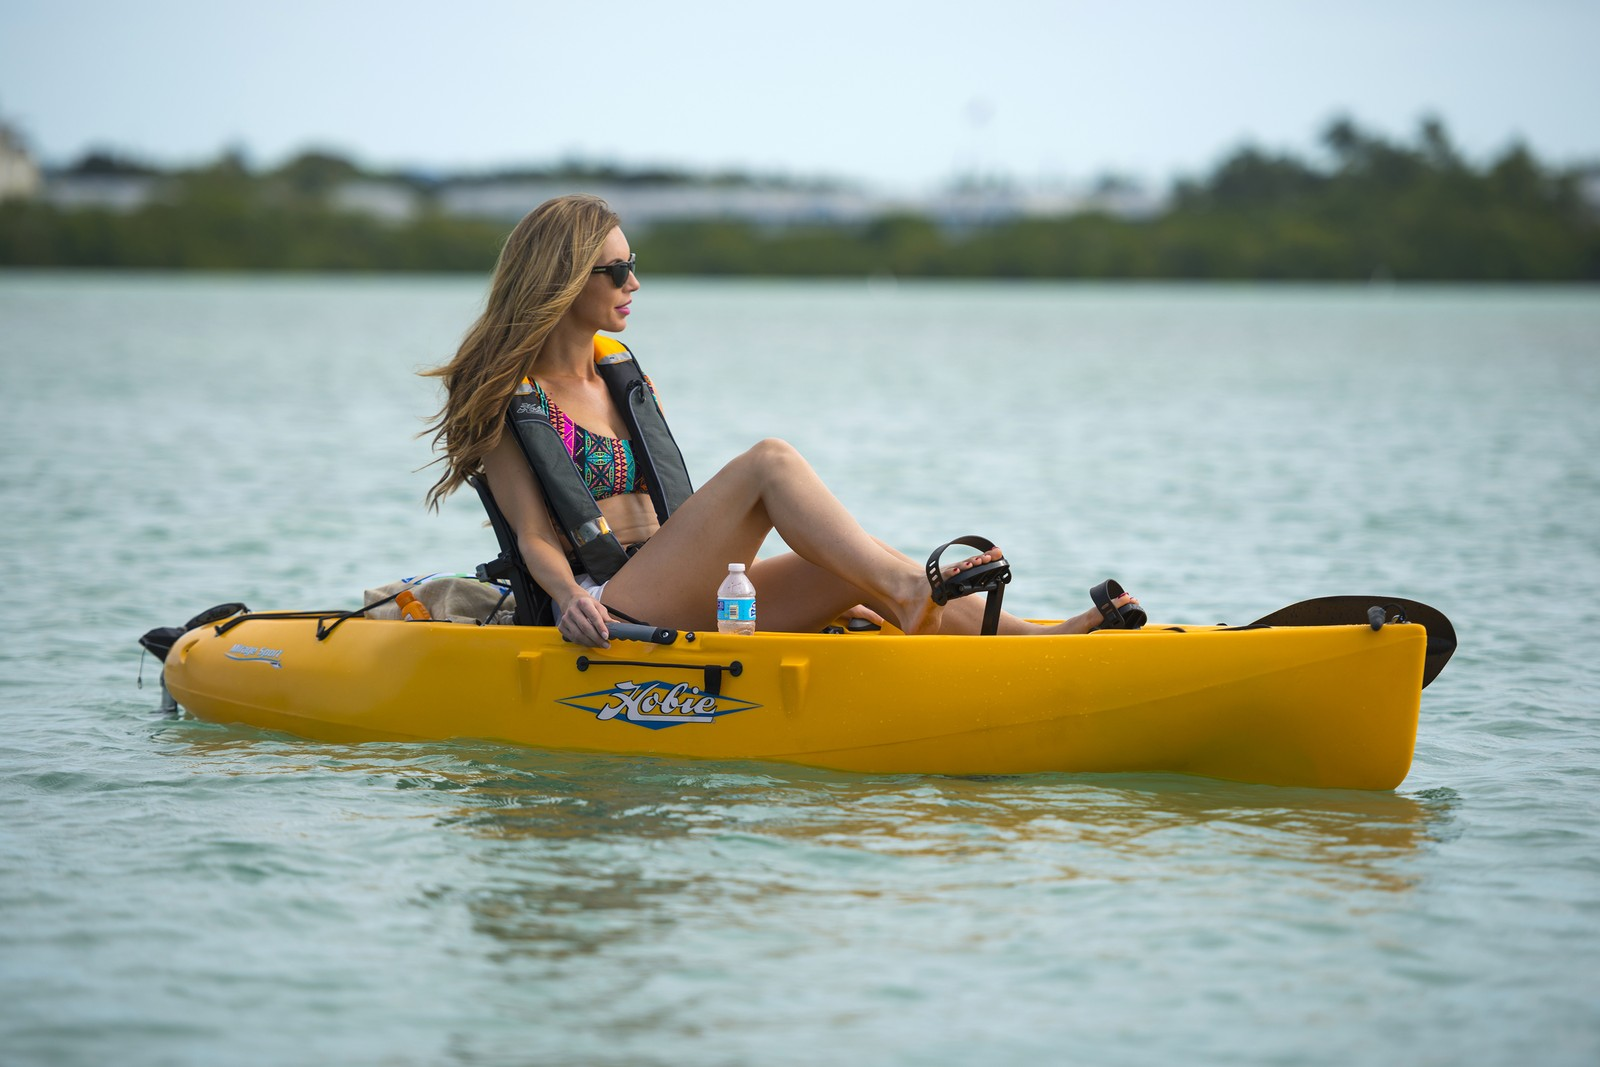 yacht watersports enthusiasts enjoy the hobie mirage single pedal kayak is perfect for exploring near the beach